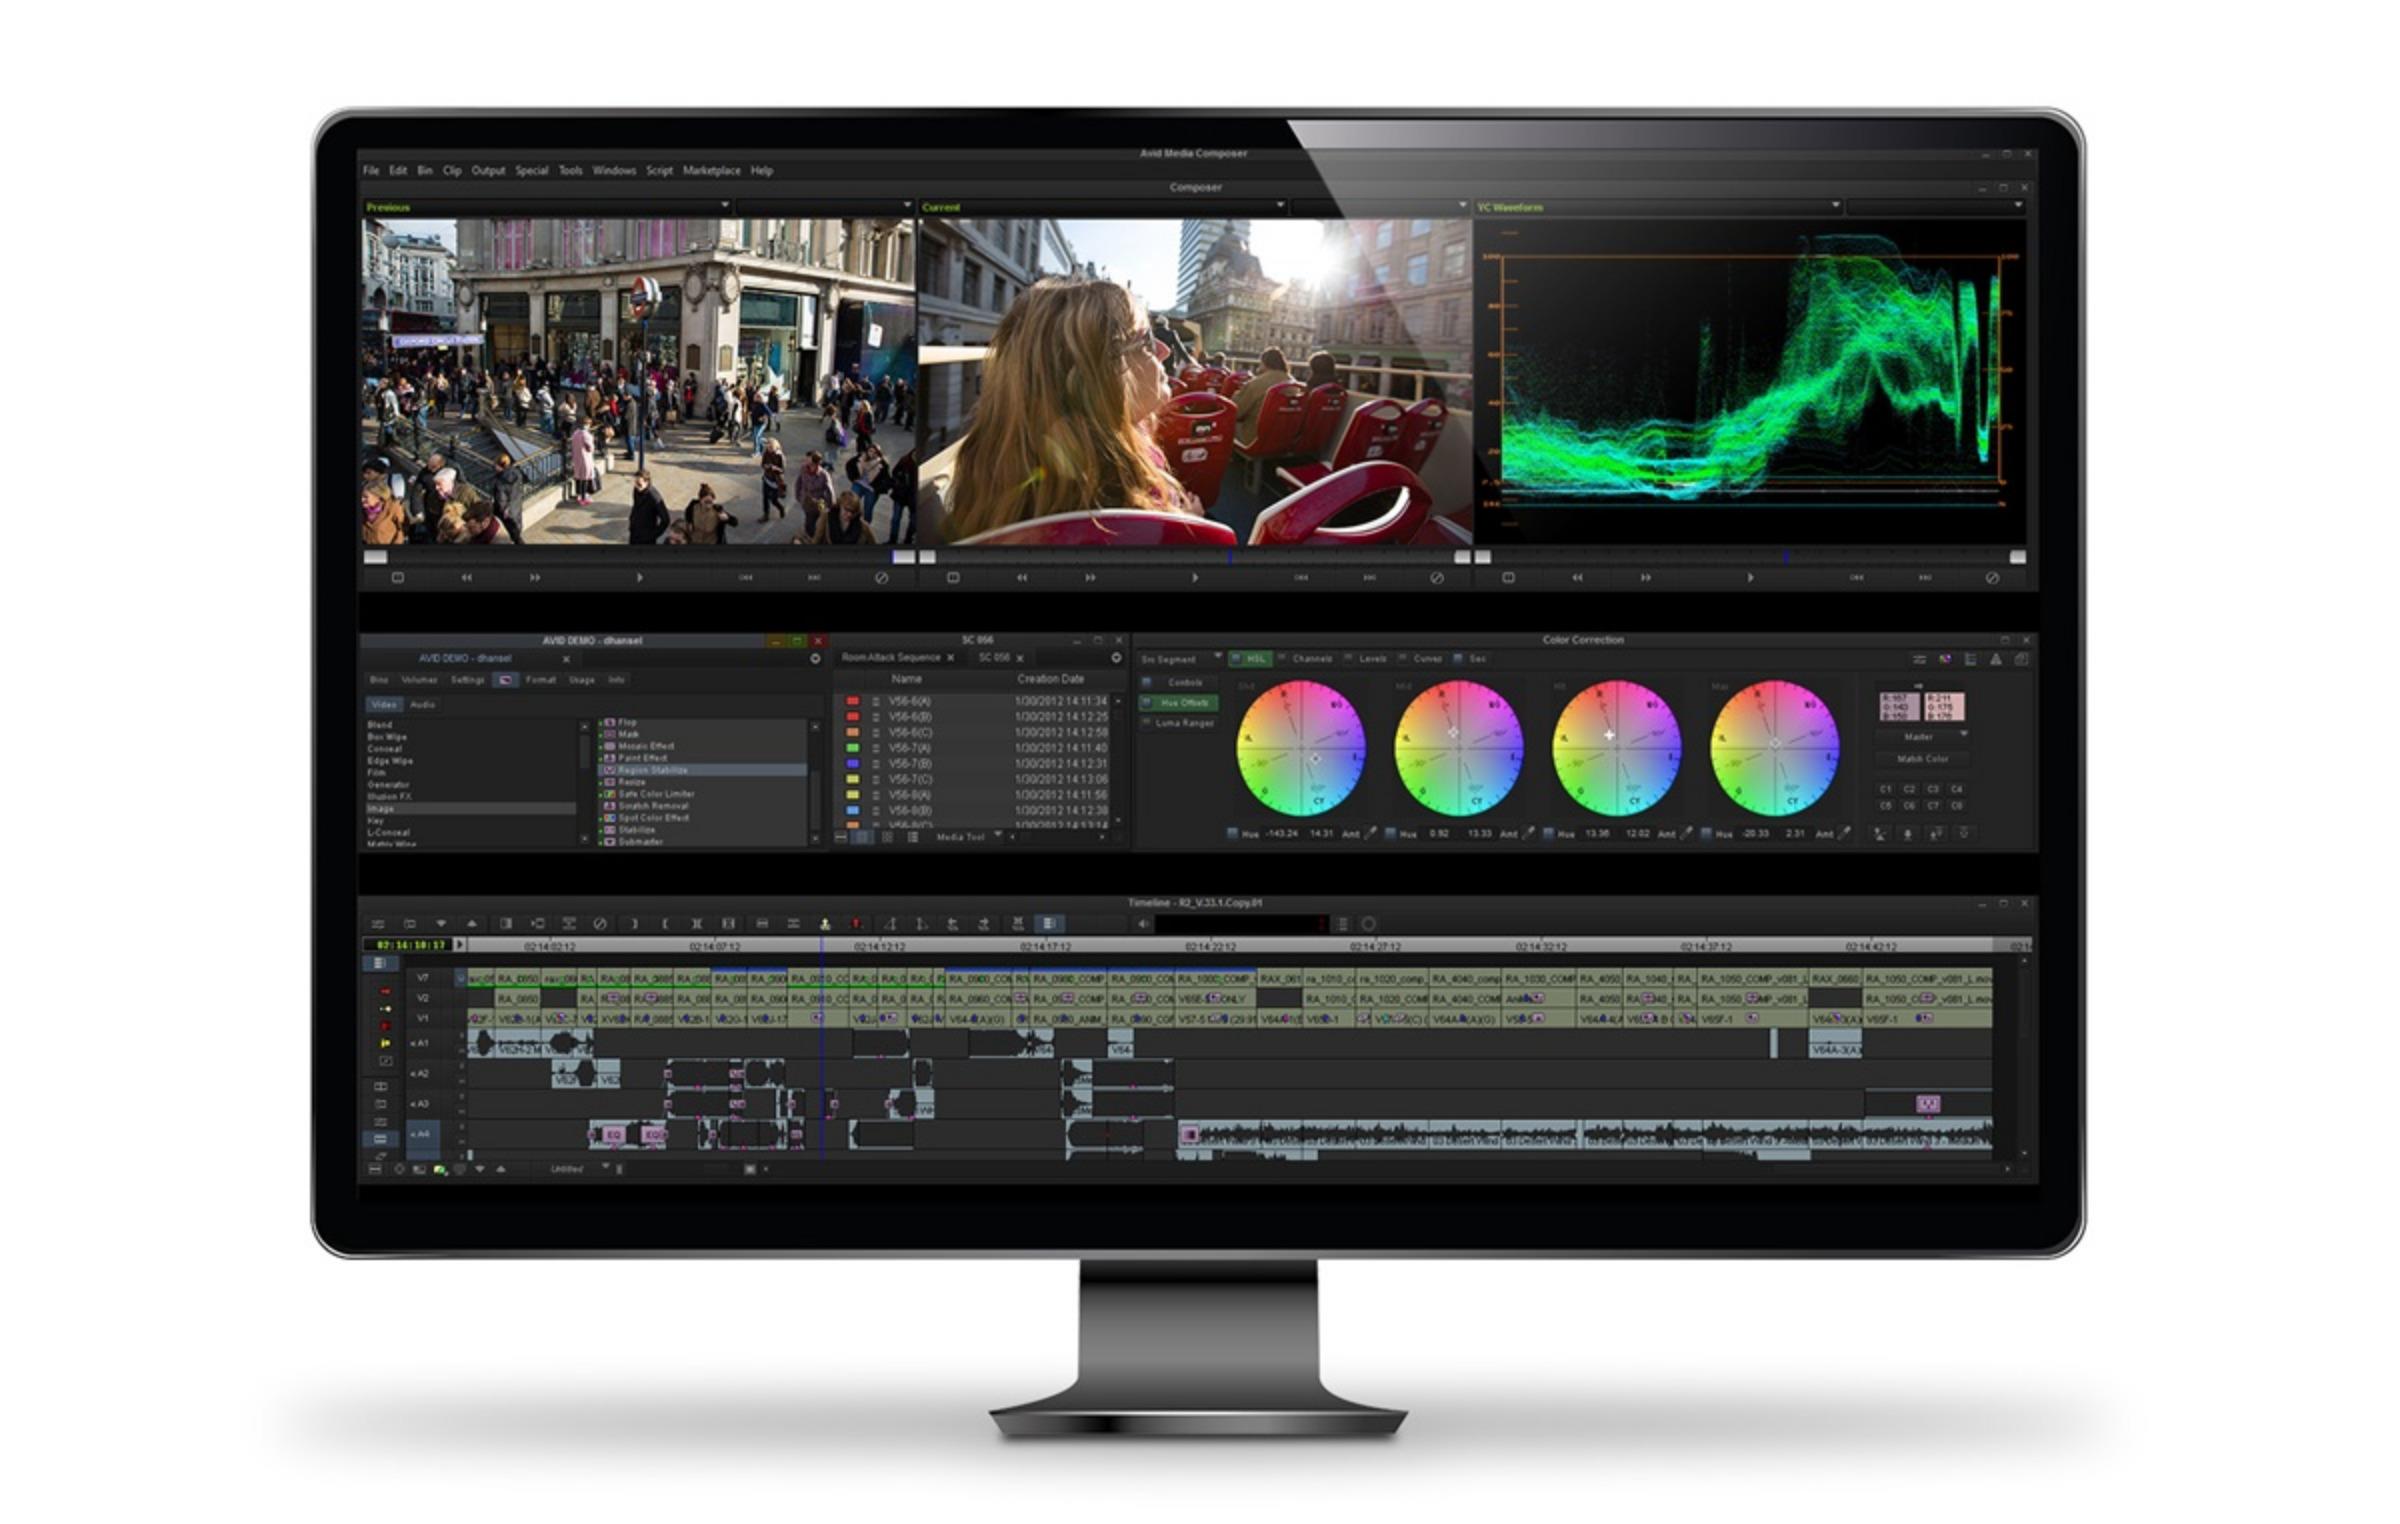 Screenshot-2018-6-29 Media Composer - Video Editing Software - Avid